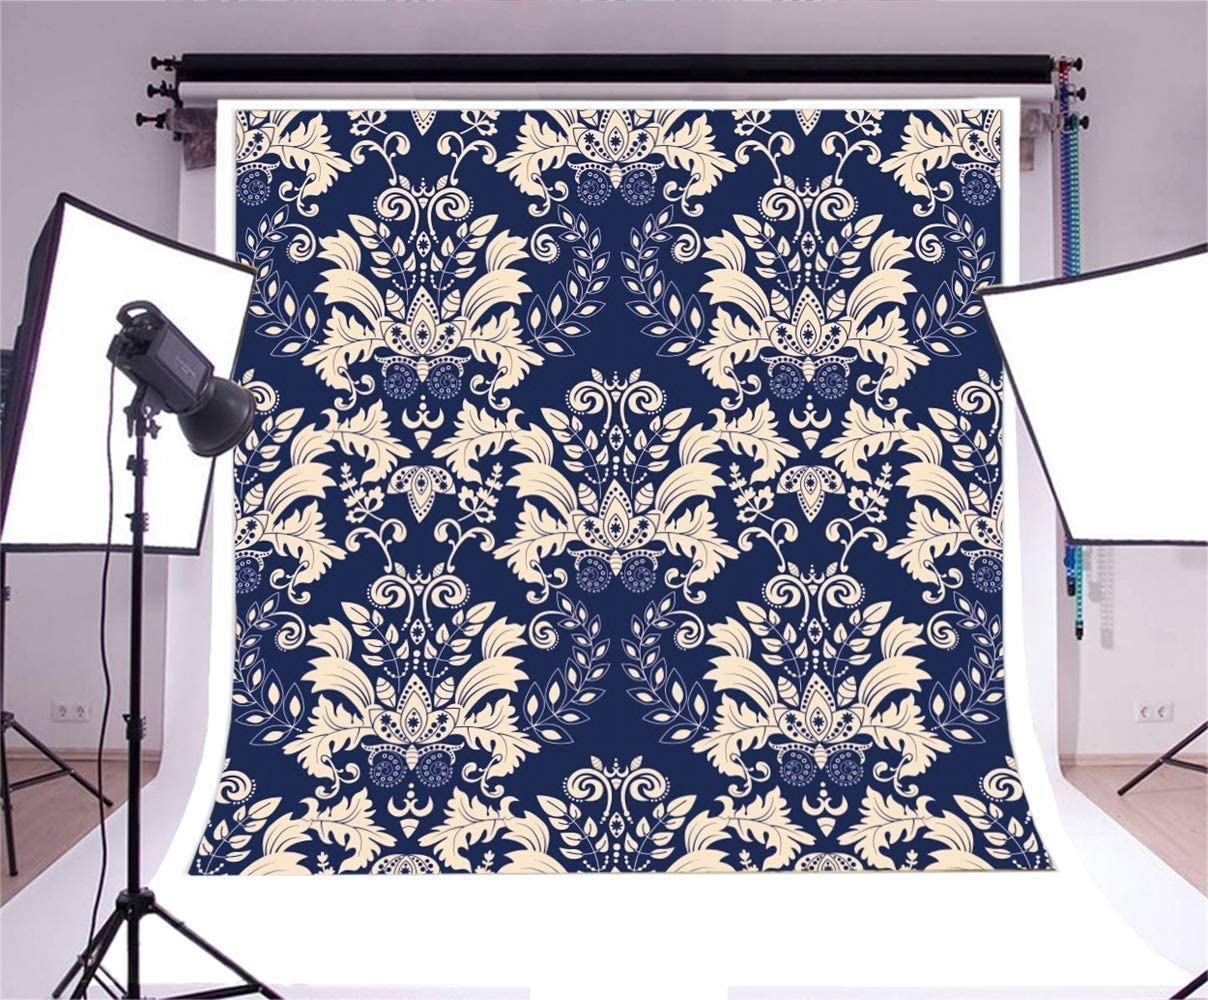 7x7ft Retro Chinese Style Symmetrical Flowers Illustration Polyester Photography Background Floral Pattern Backdrop Personal Portrait Shoot Indoor Decors Old Fashioned Wallpaper Studio Props